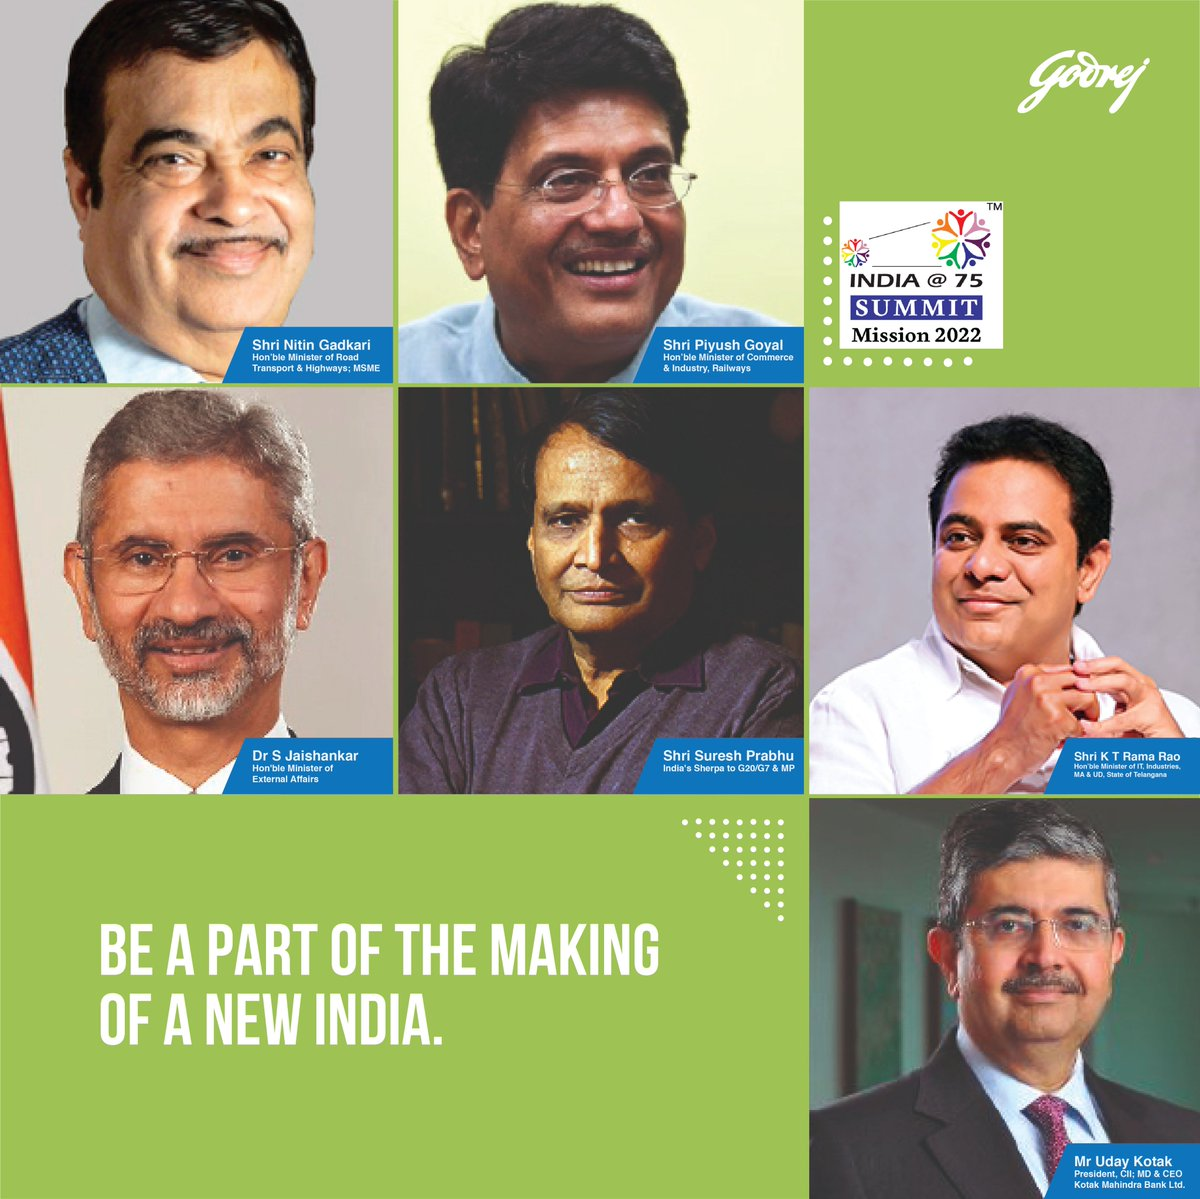 On 8th August, the most influential minds of our nation will decide its way forward at the @Indiaat75 Summit - Collaborating for a new, self-reliant India. The leaders will collectively paint the vision of our country #EmergingStronger at 75. Register here https://t.co/DP7PD1BMvQ https://t.co/WfZ1yytxG4